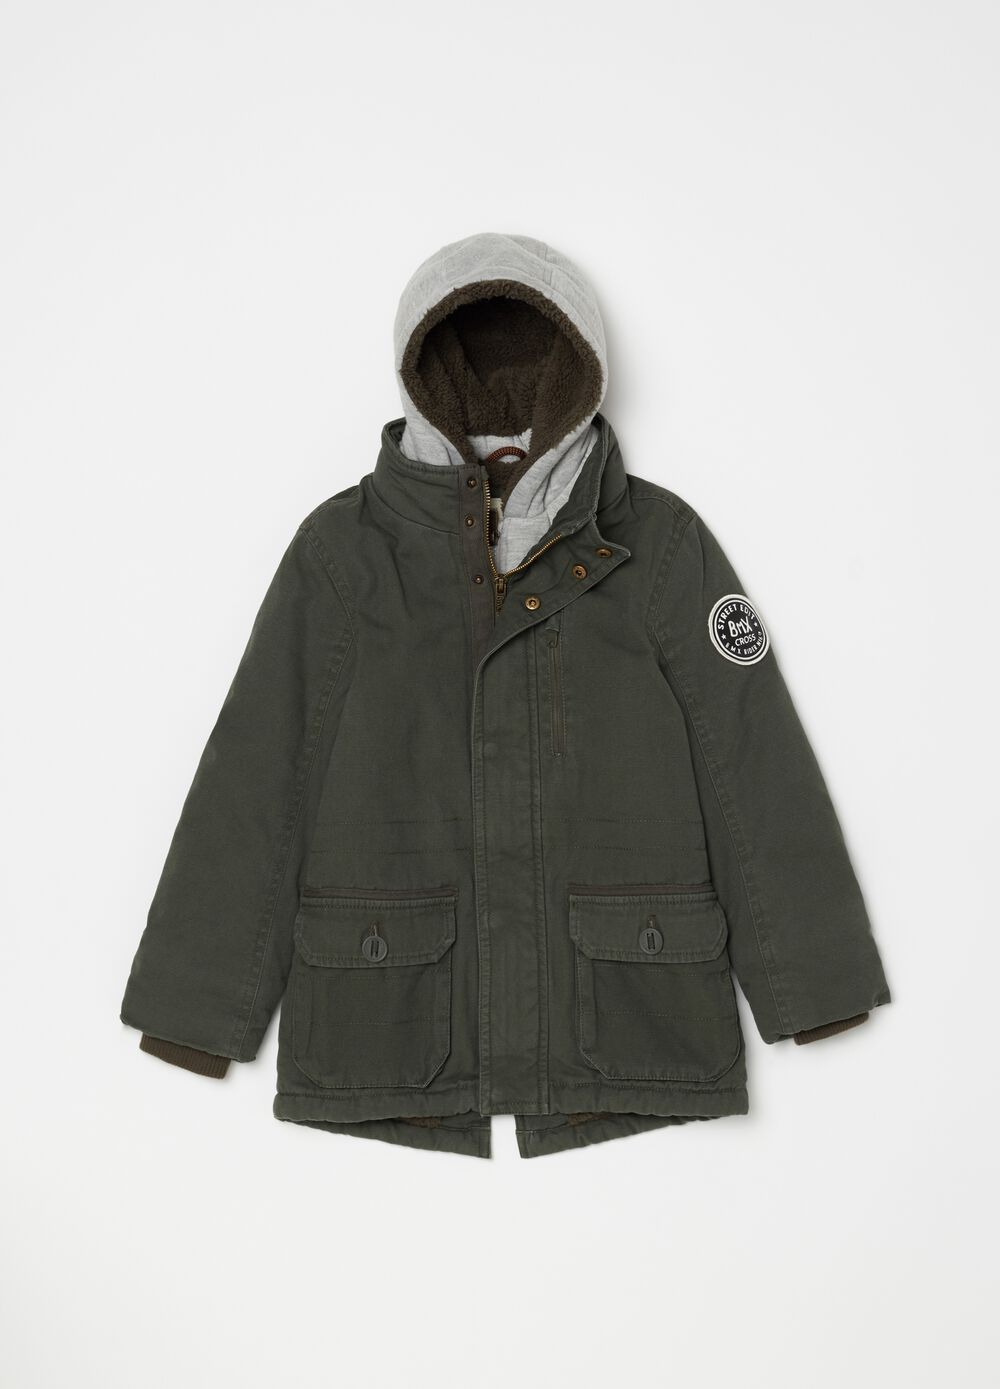 Parka in 100% cotton with fleece lining